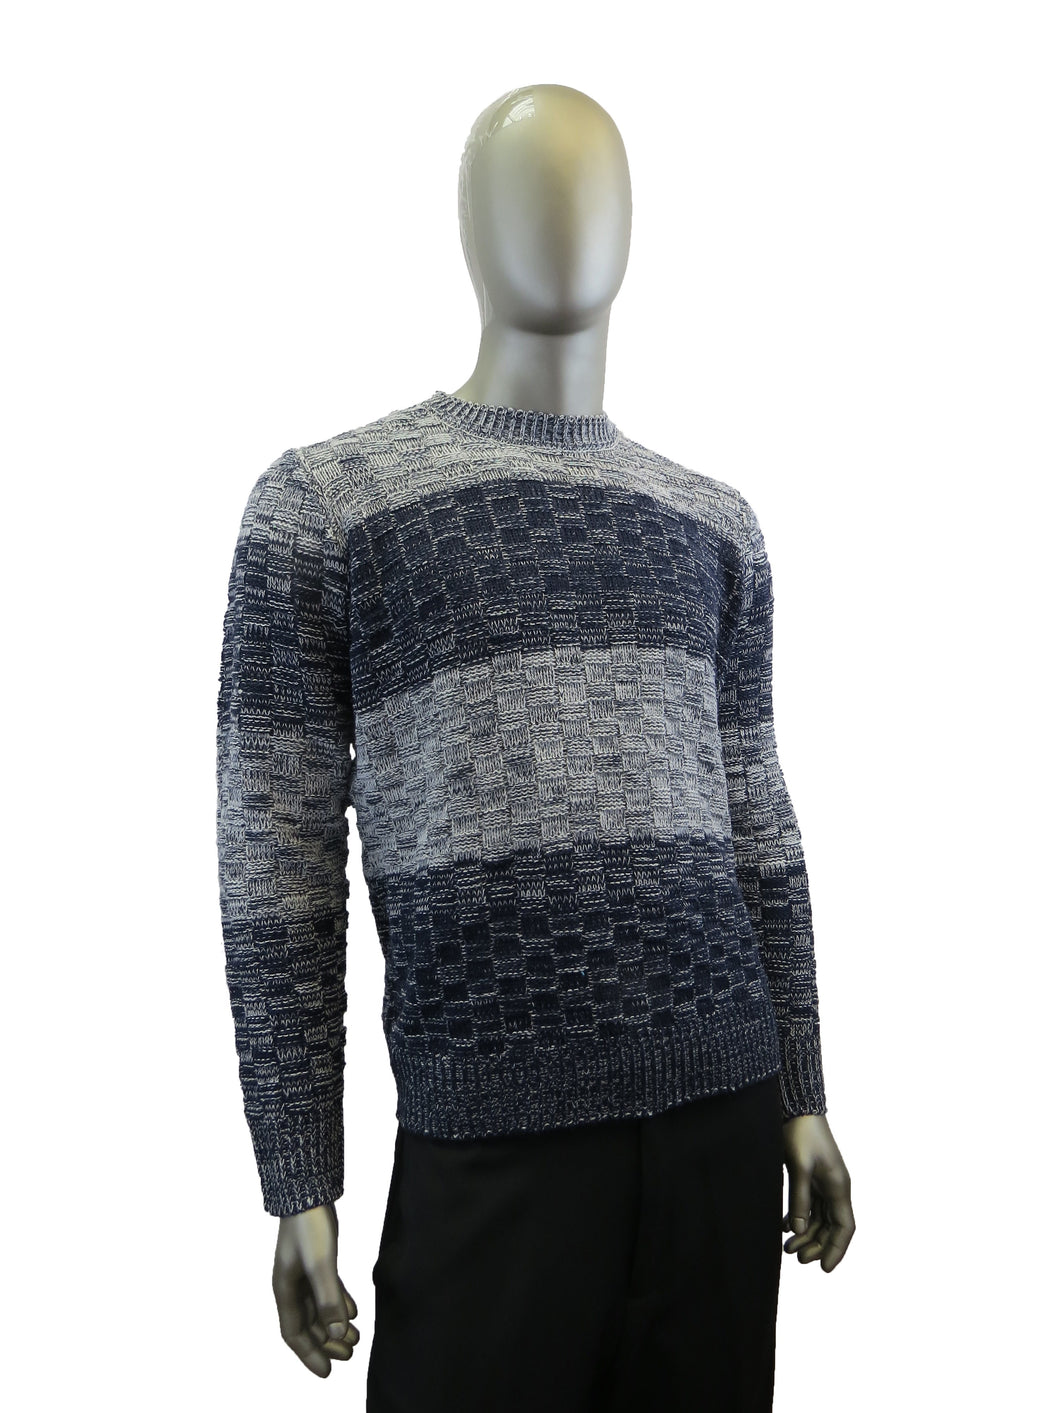 Sergio Louis | SWT-81202 | Sweater | Black/Grey